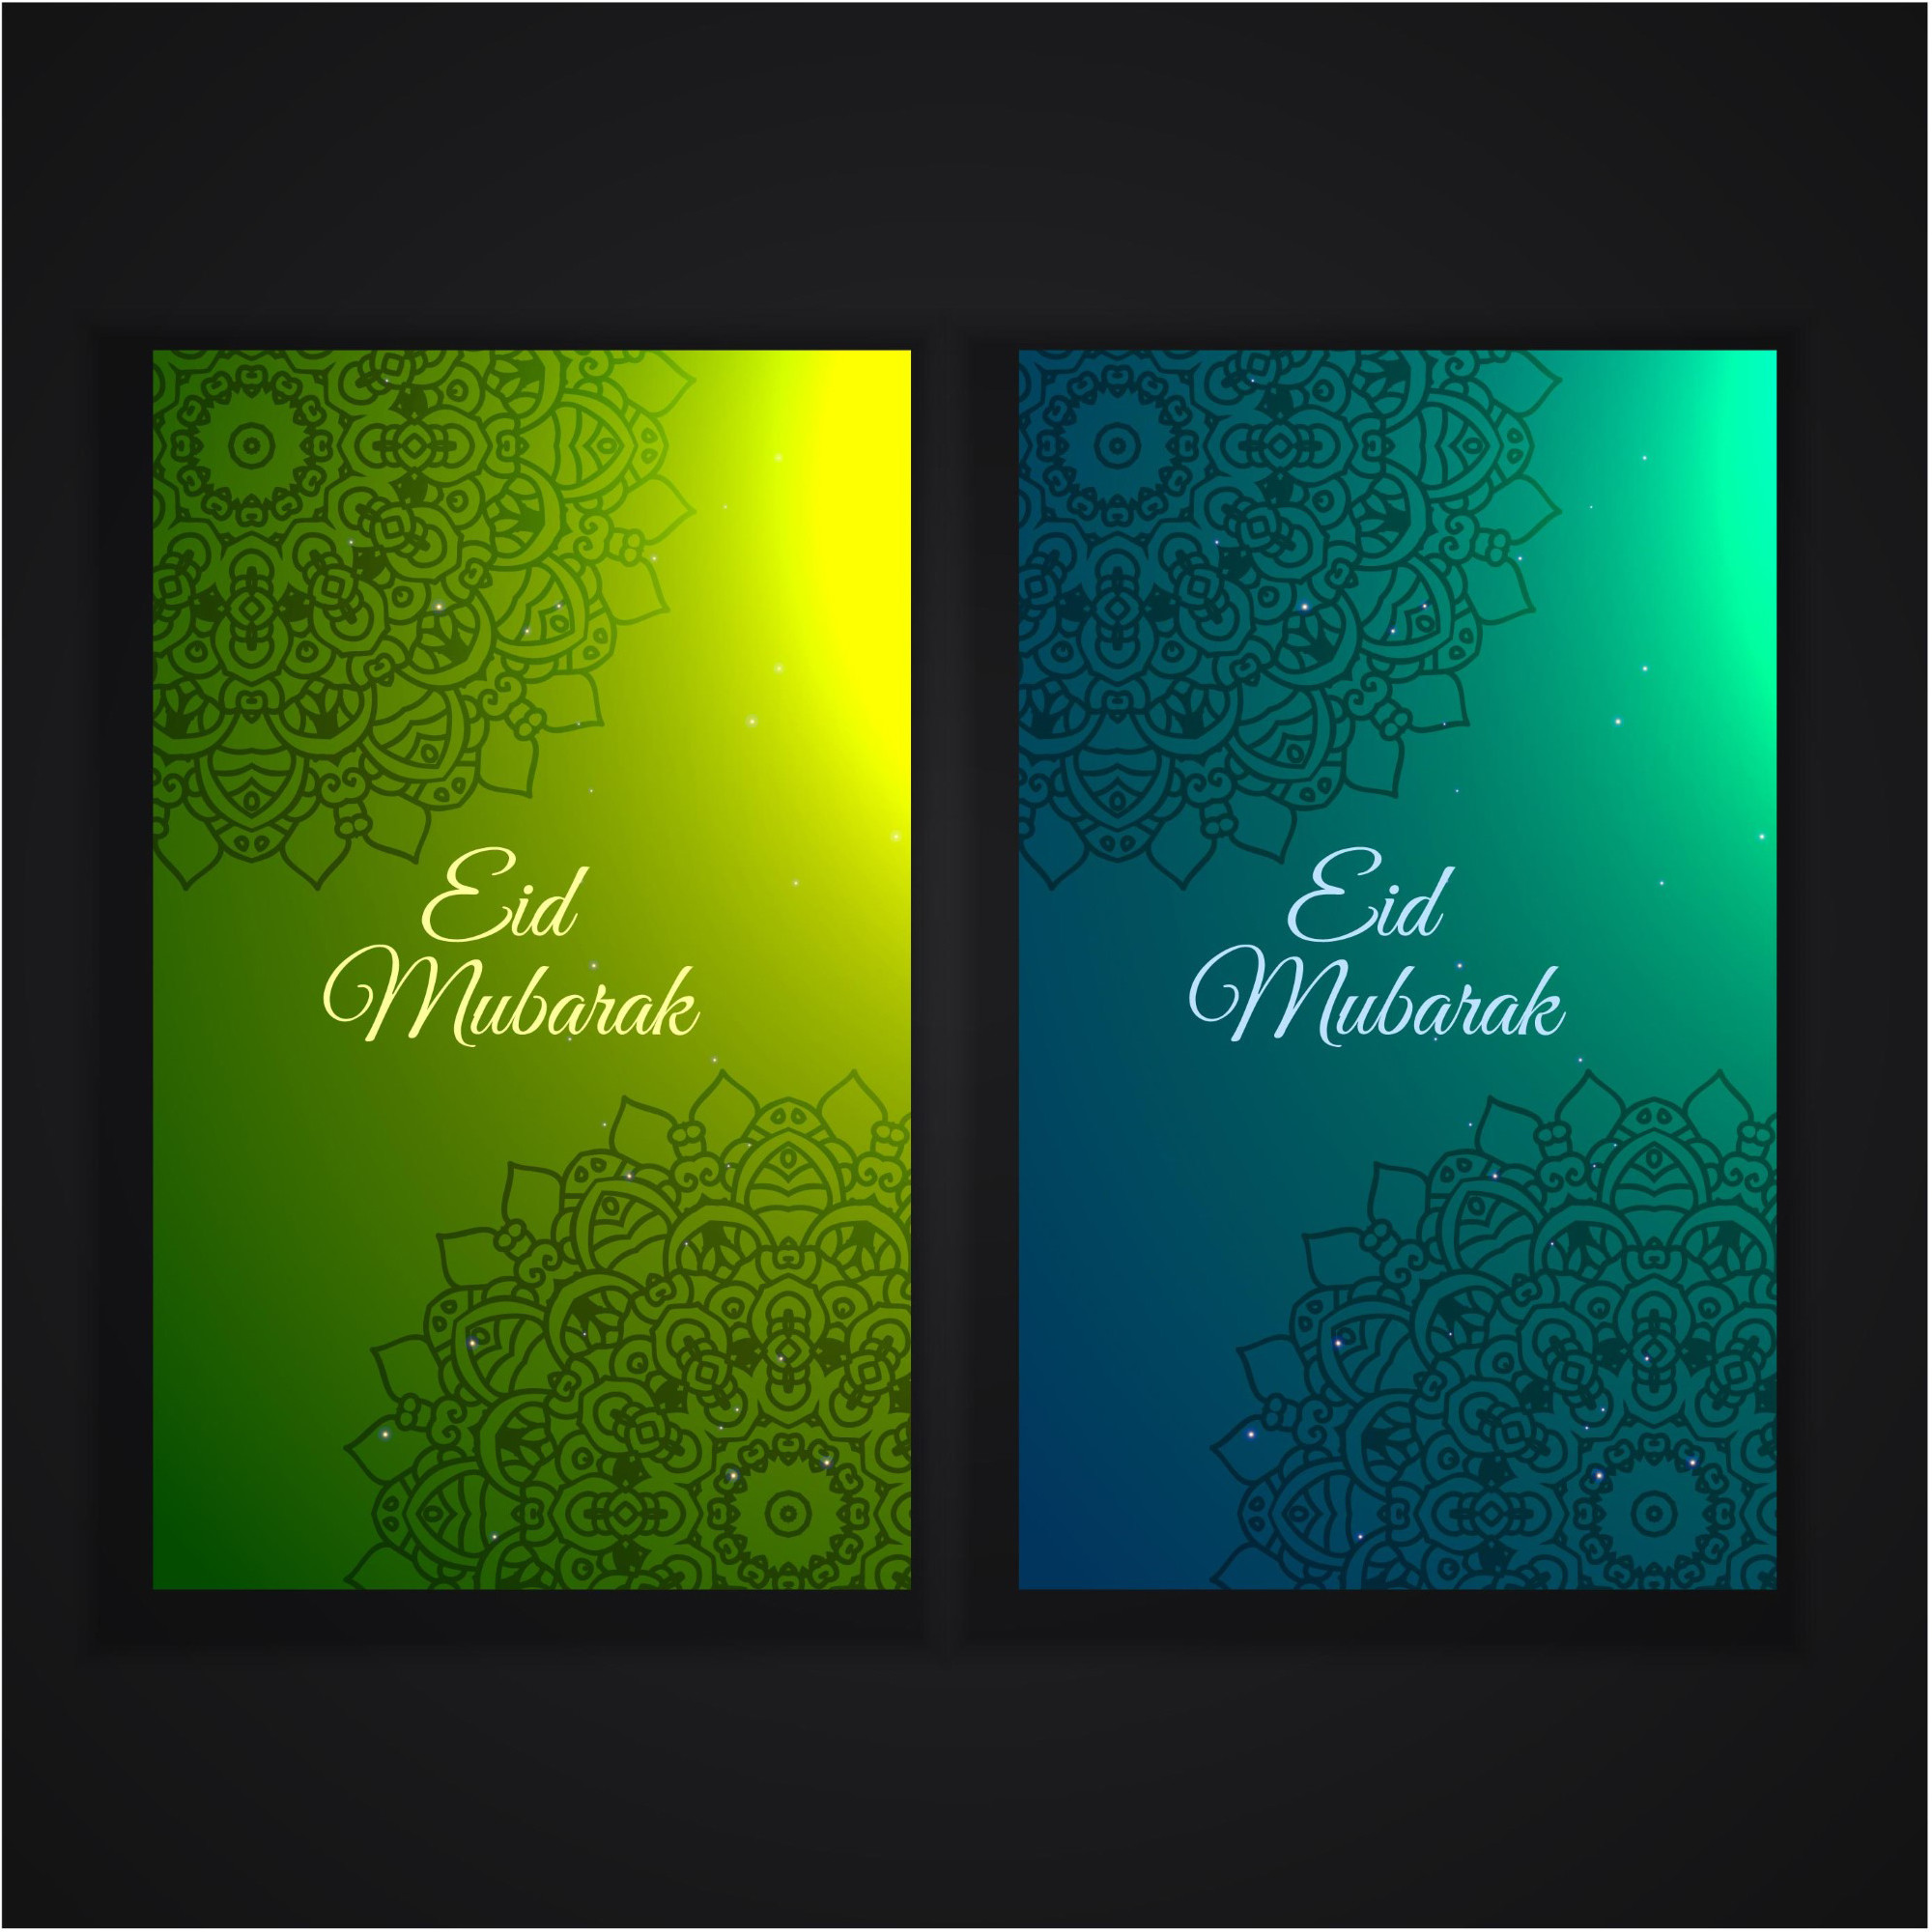 2000x2000 Grey & Greem Wid Mubarak 2017 Greeting & Banners Vector Cards http://www